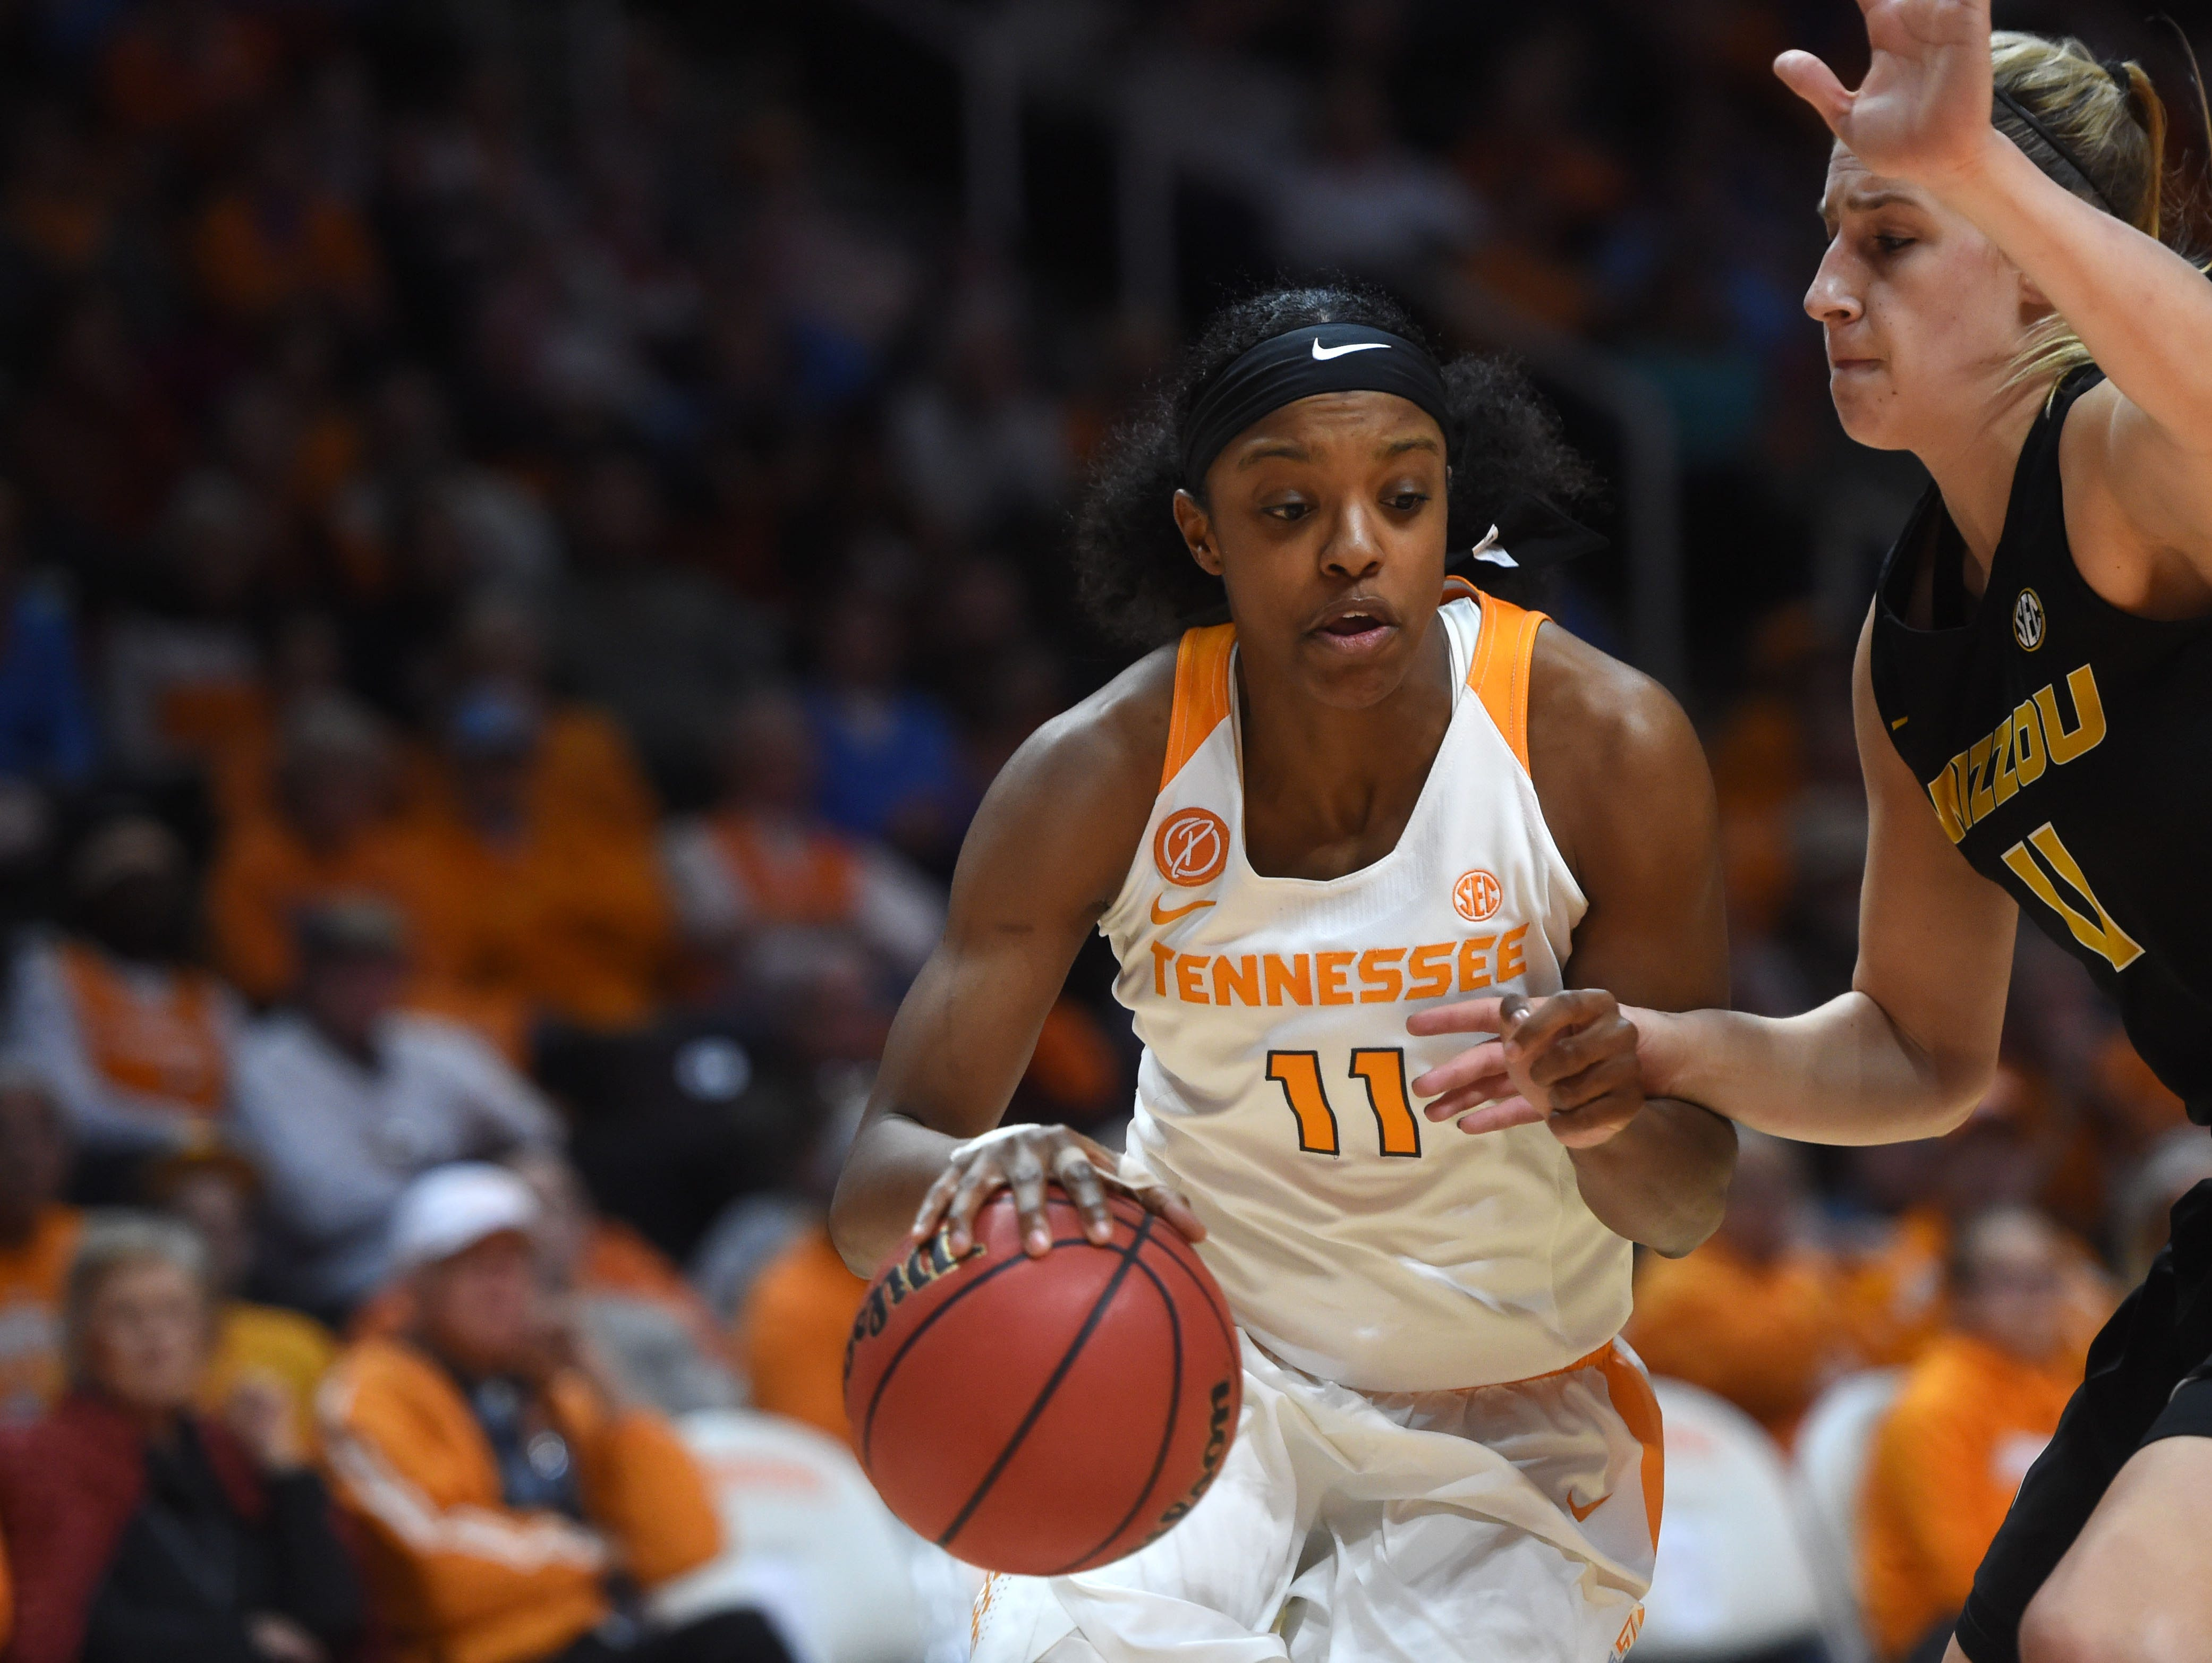 Tennessee's Diamond DeShields drives against Missouri's Lindsey Cunningham on Thursday at Thompson-Boling Arena Thursday.